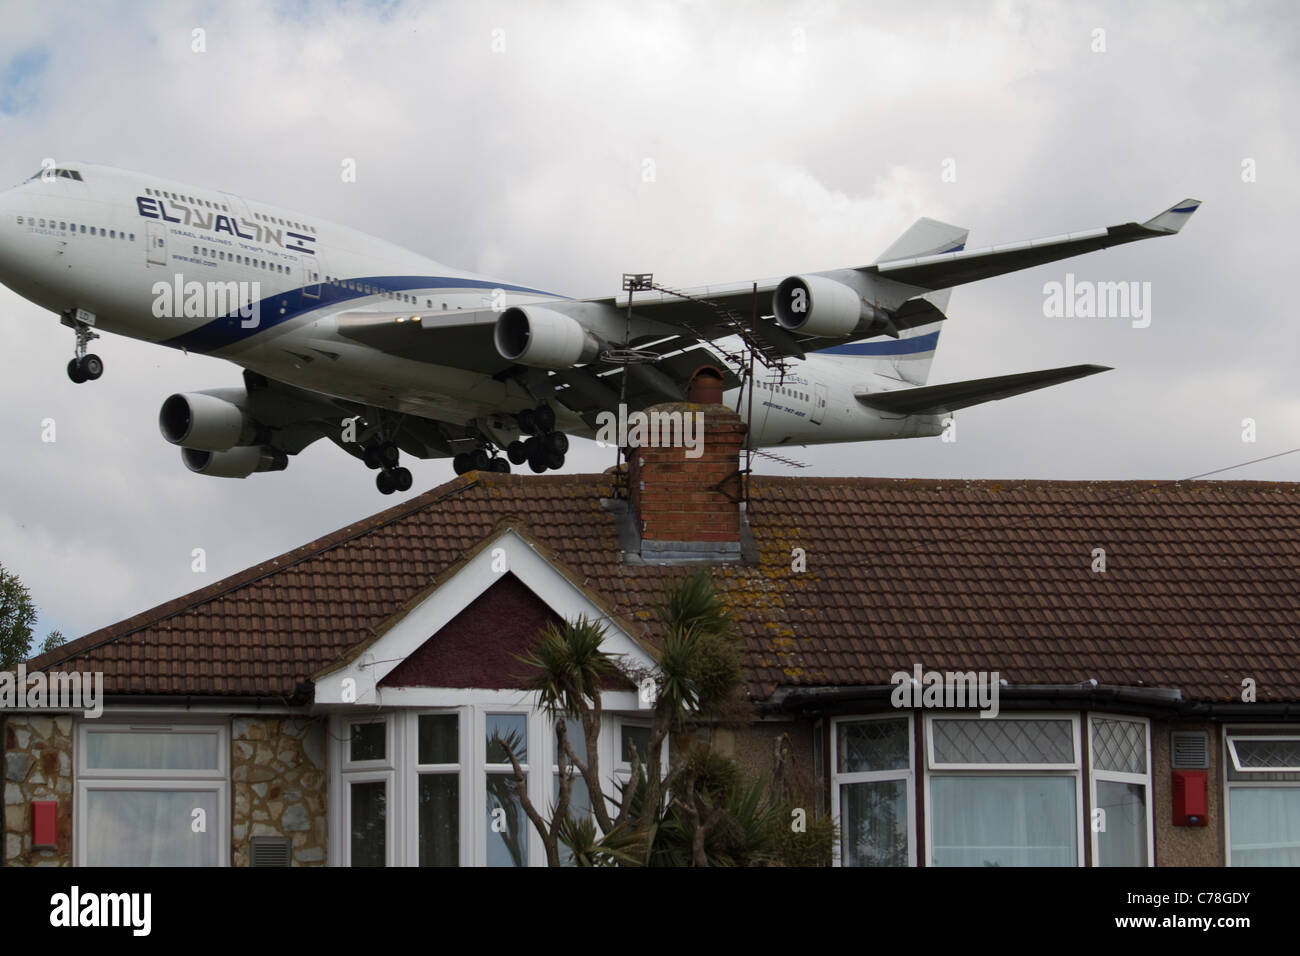 elal el al israel airlines airliner Low flying aircraft Heathrow airport approach - Stock Image